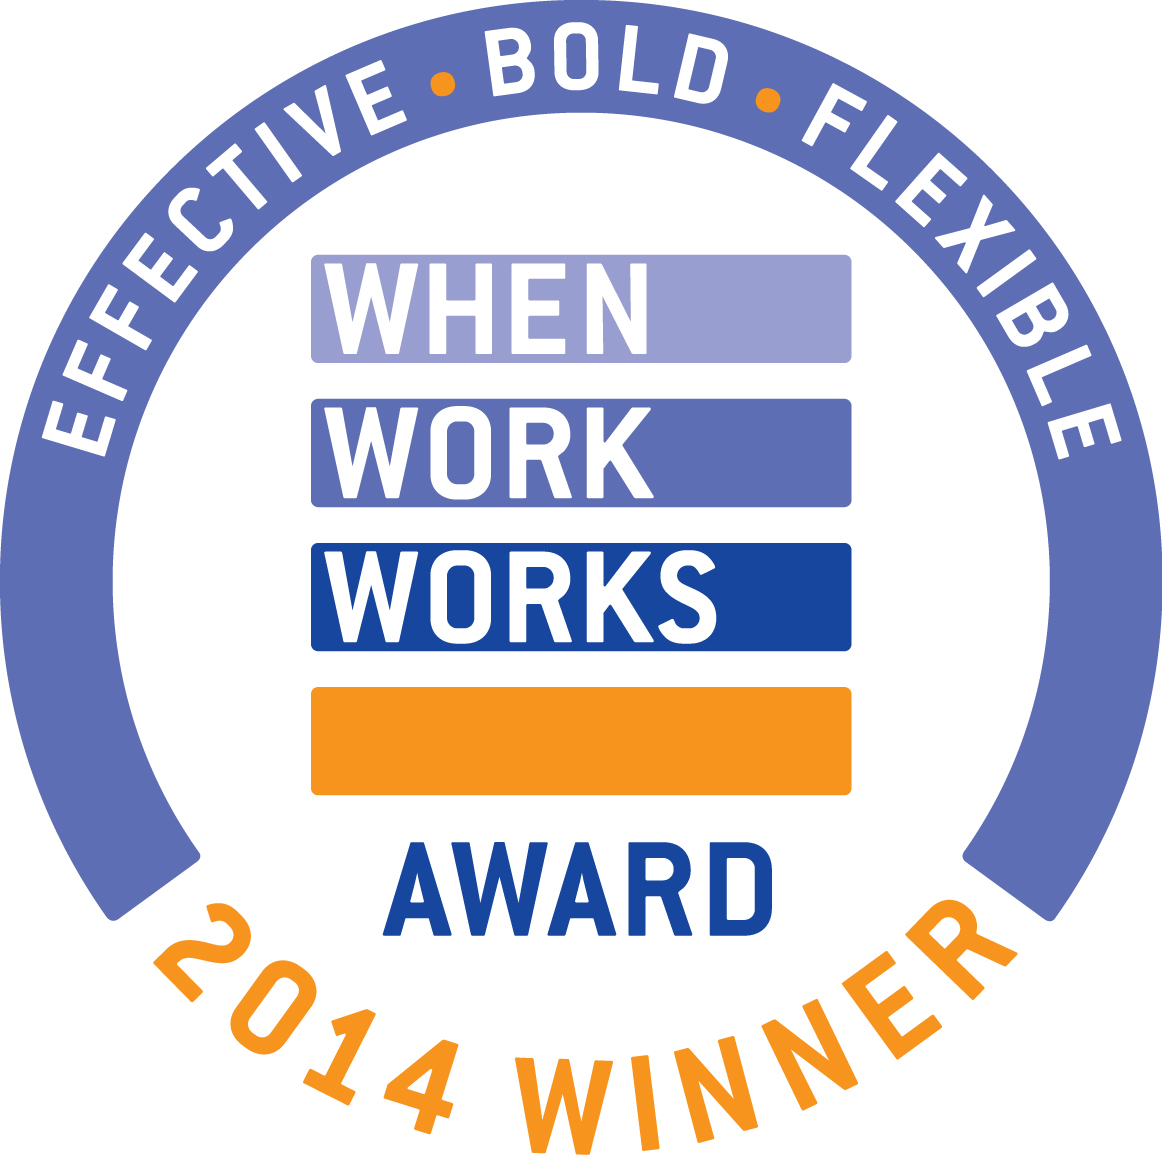 Career Path Services Recognized For Exemplary Workplace Practices